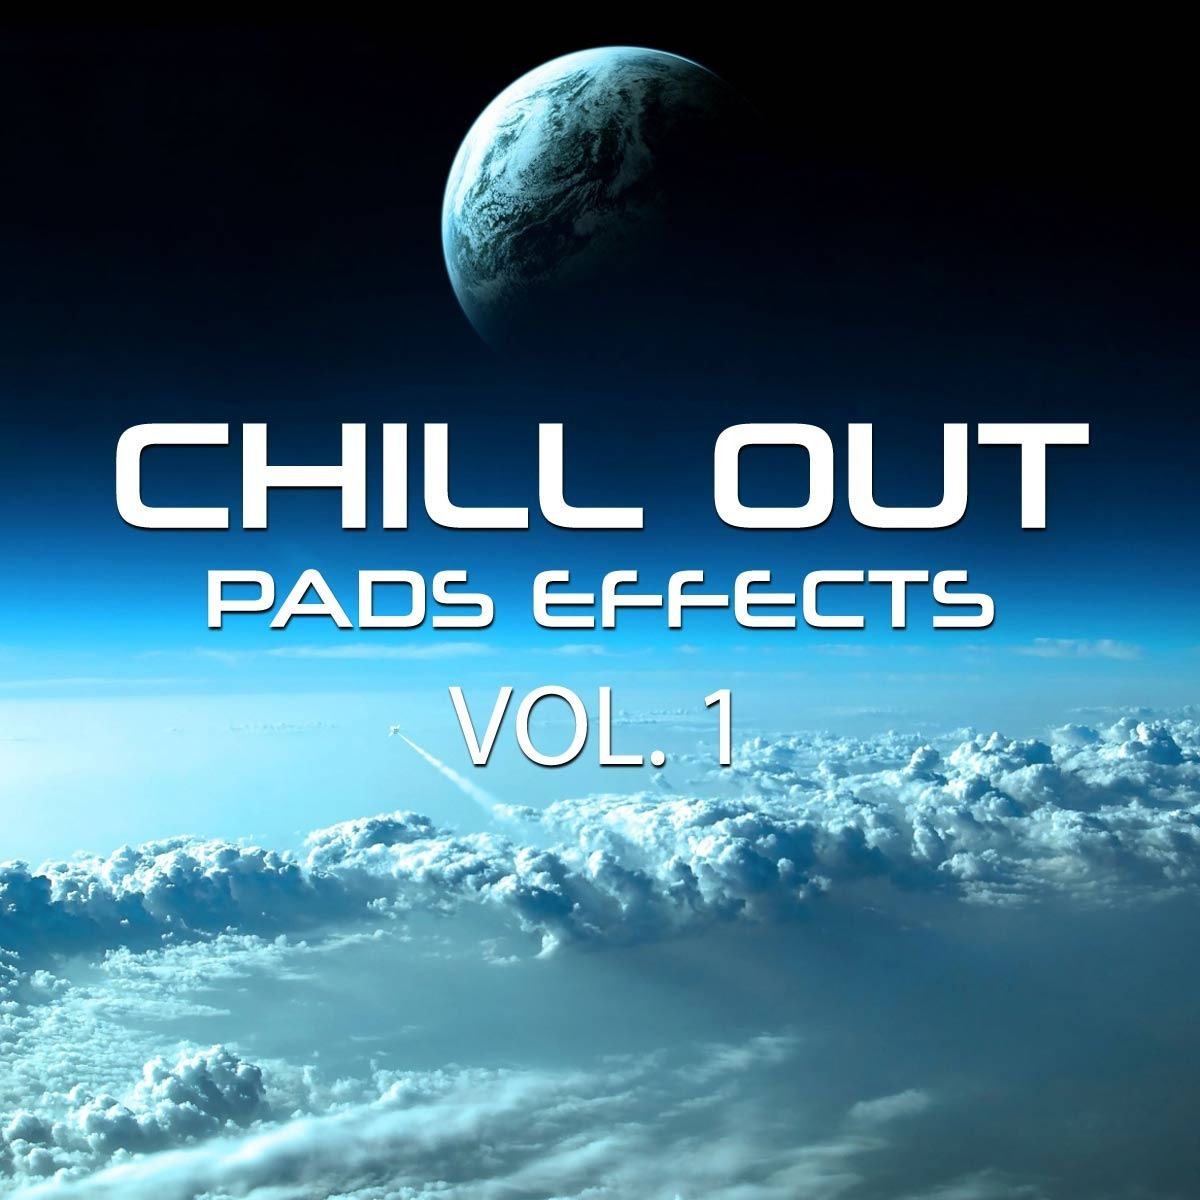 Chillout Pads Effects Vol 1